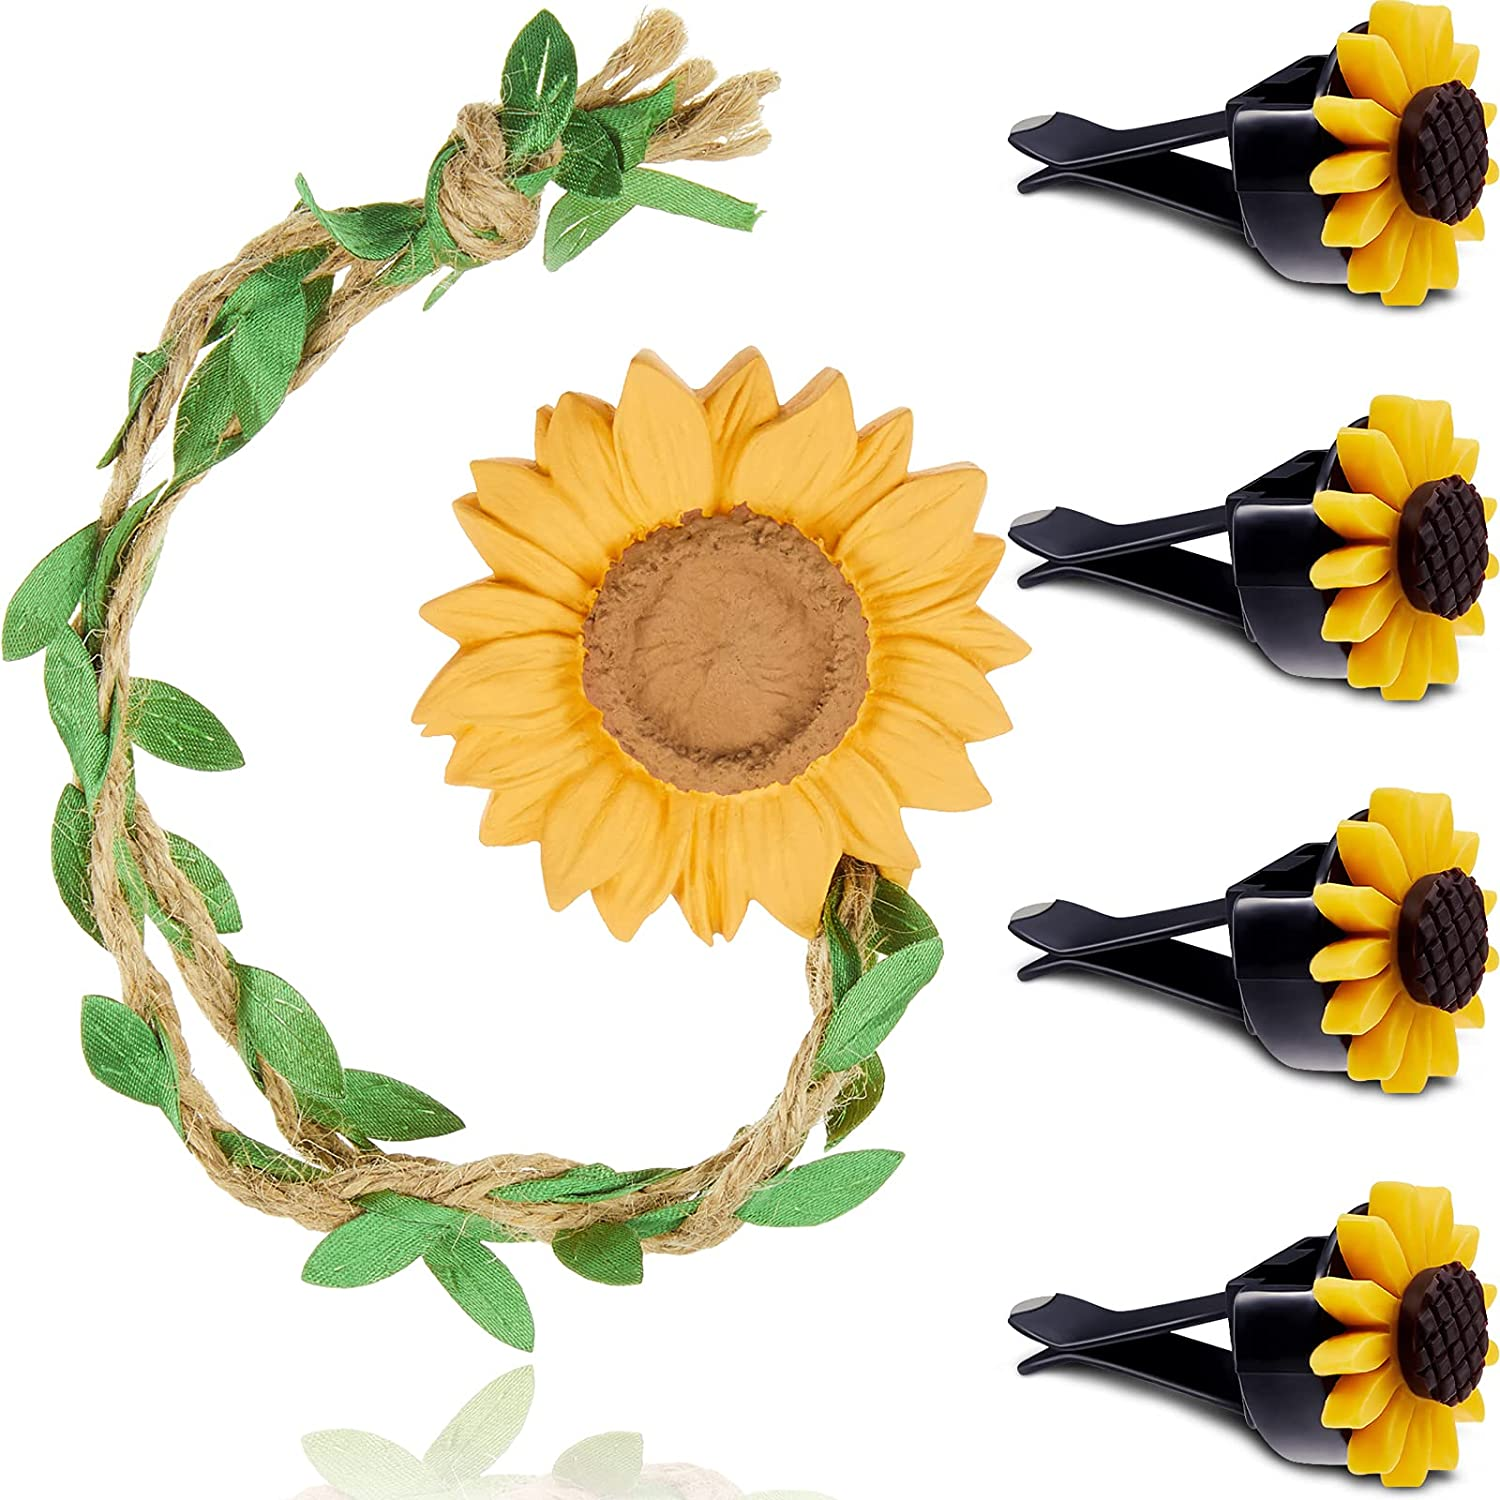 Sunflower Rear View Mirror Hanging Car Interior Accessories Car Mirror Charms Pendant Decor with 4 Pieces Car Air Freshener Clip Lucky Hanging Car Ornament Home Decoration for Women and Men